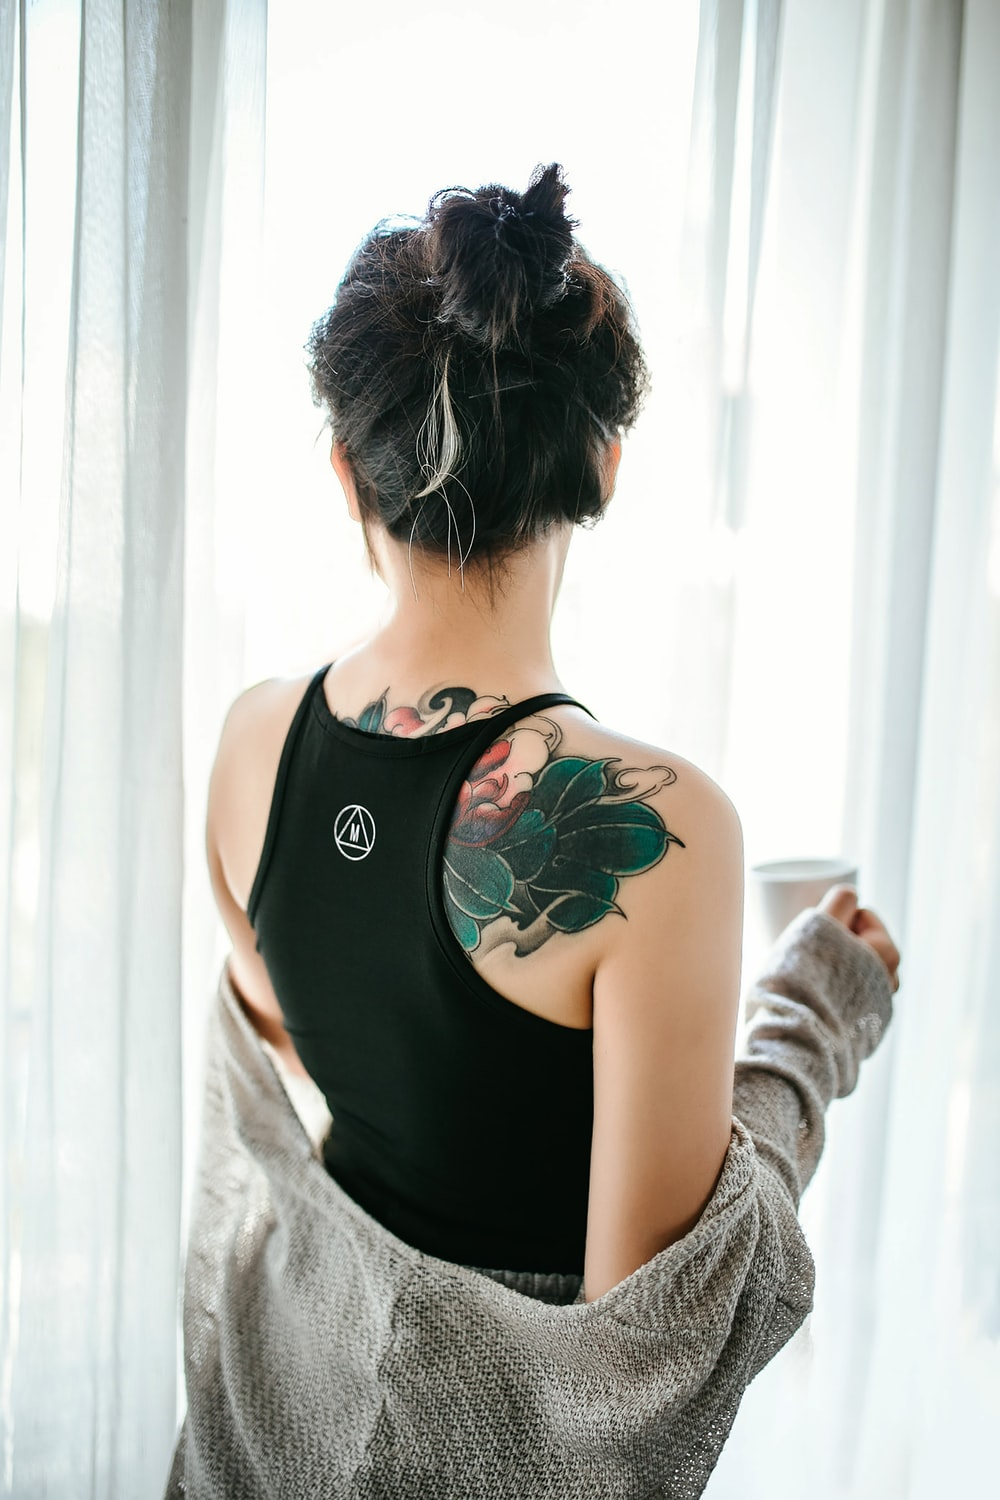 350+ Tattoo Girl Pictures